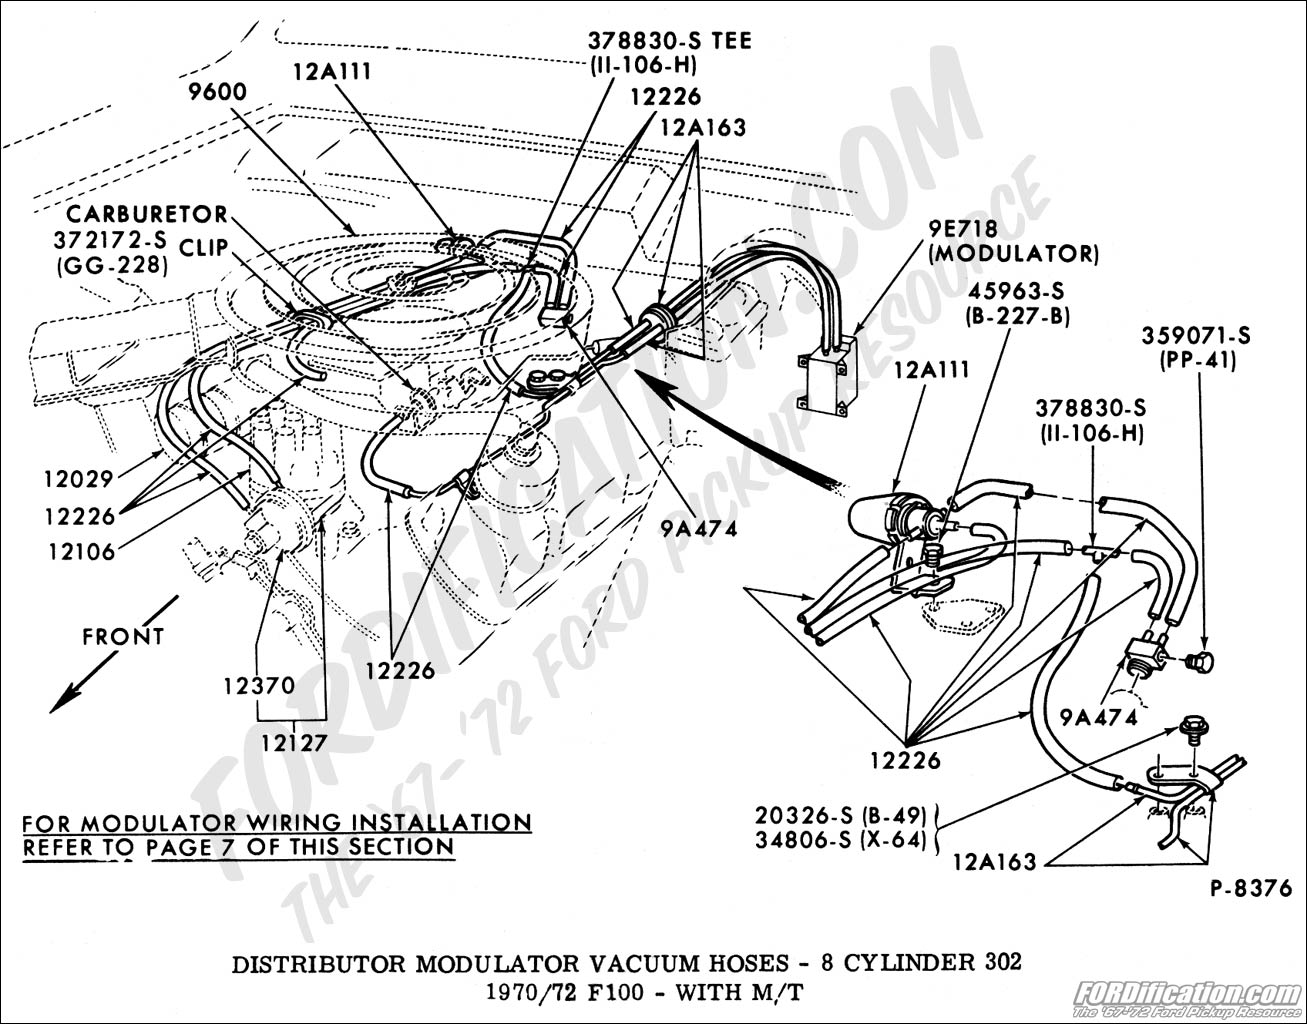 chevy coil wiring diagram chevrolet wiring diagram tbi ignition coil Hyundai Sonata Parts List tbi ignition coil wiring diagram tbi discover your wiring 1991 chevy 350 pickup coil location 89